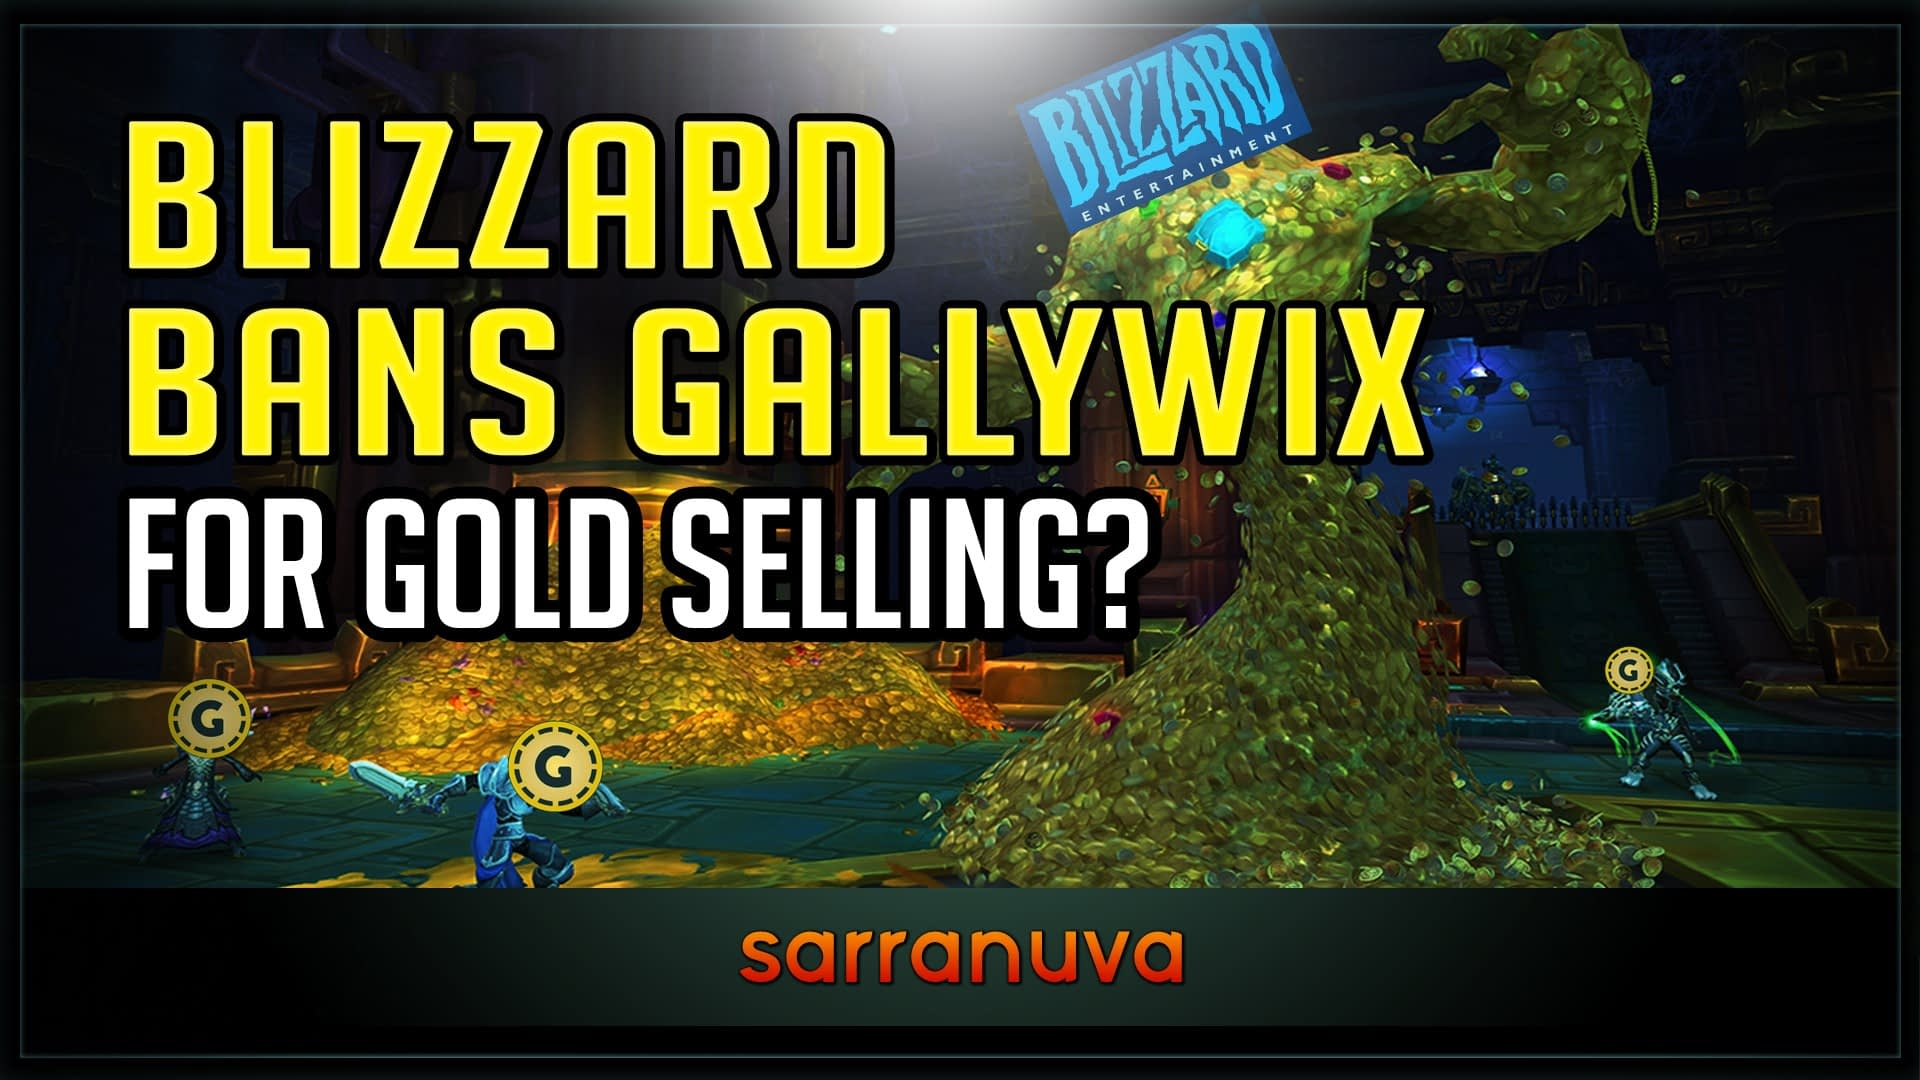 Blizzard Bans Gallywix for Gold Selling RMT